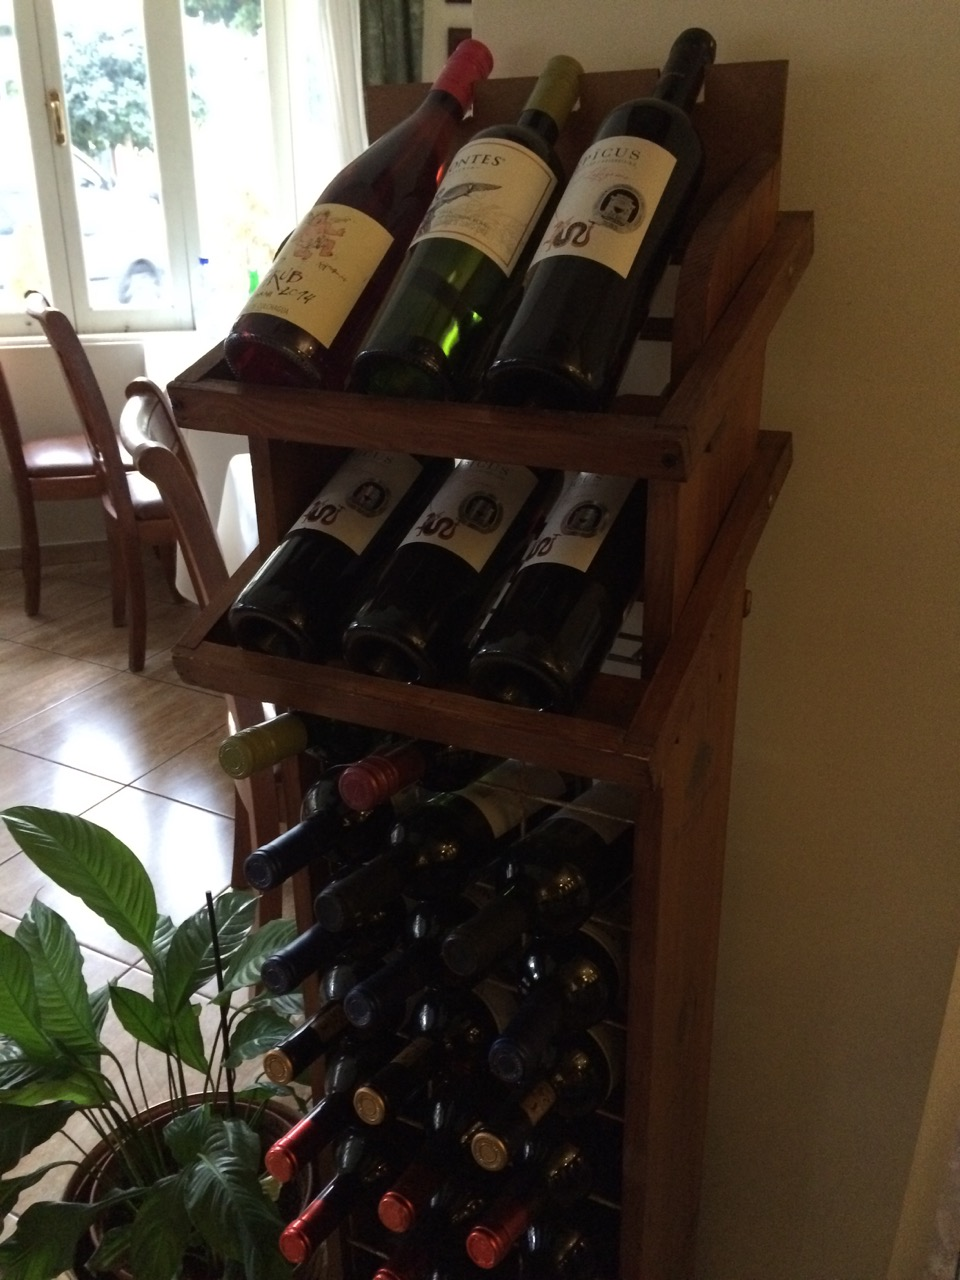 Good selection of wines